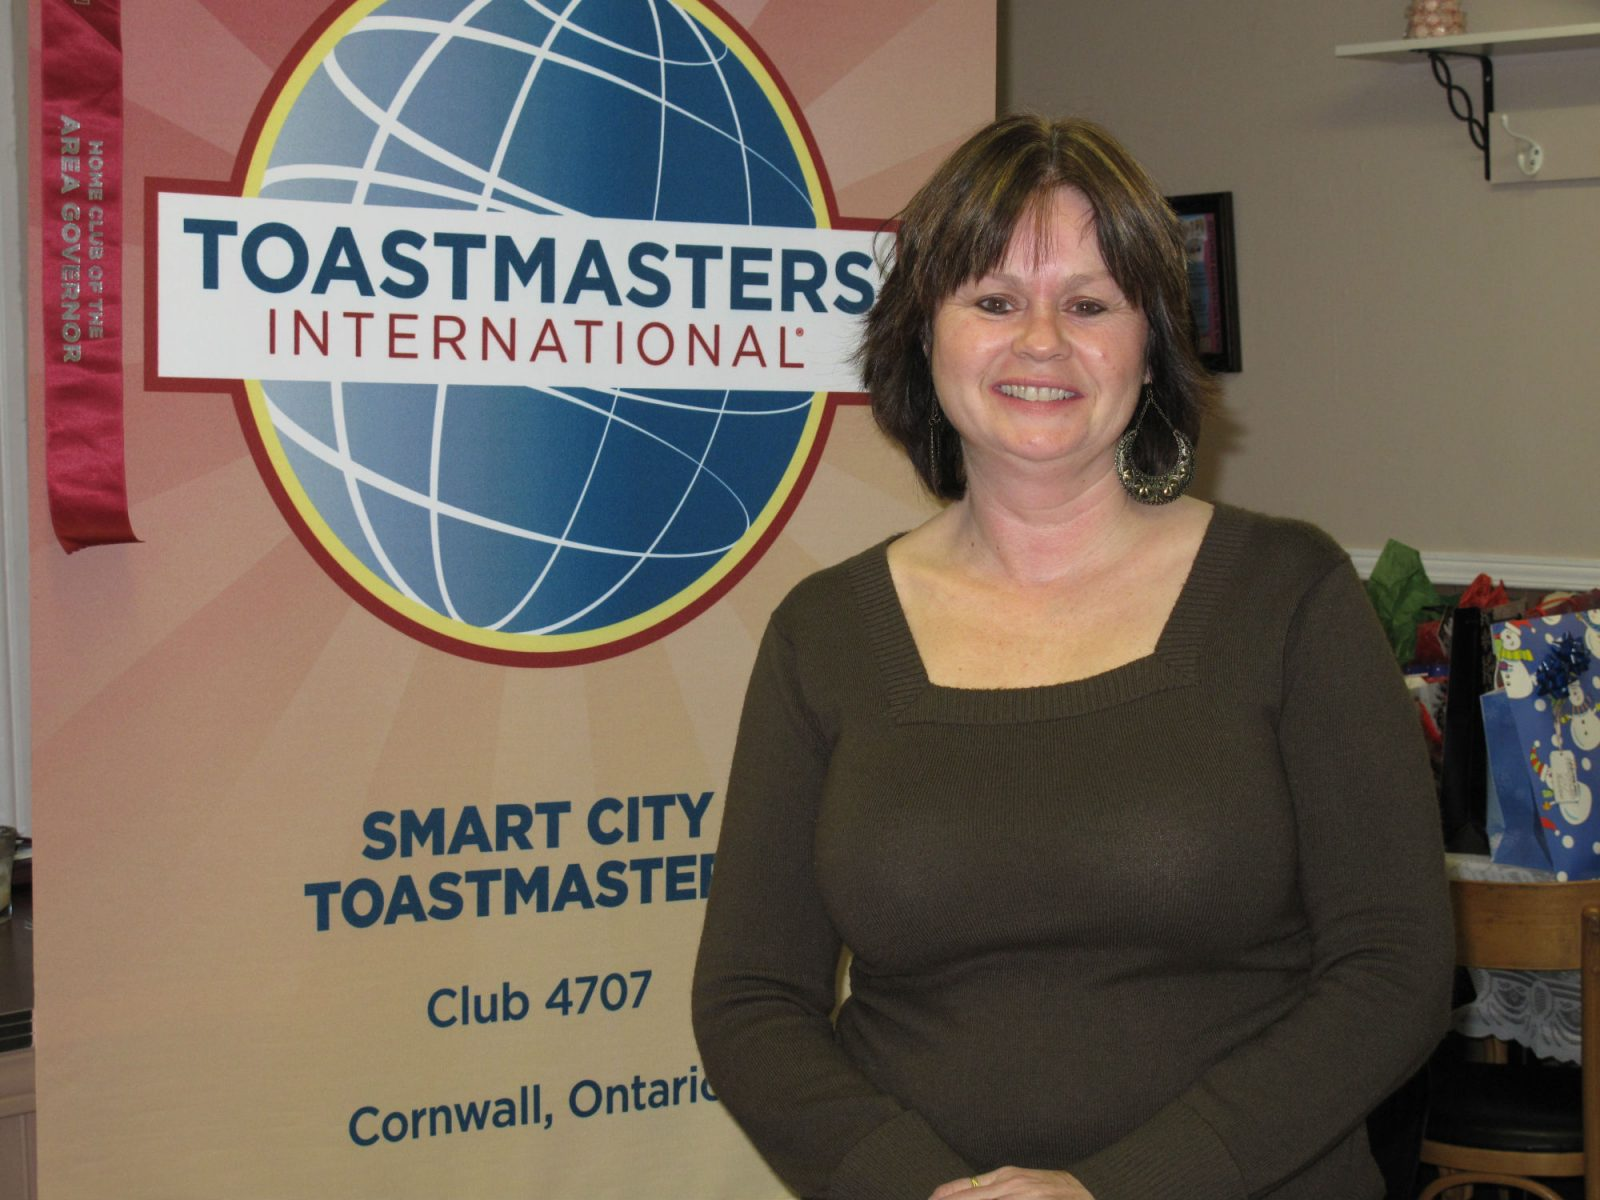 Face public speaking fears with Toastmasters